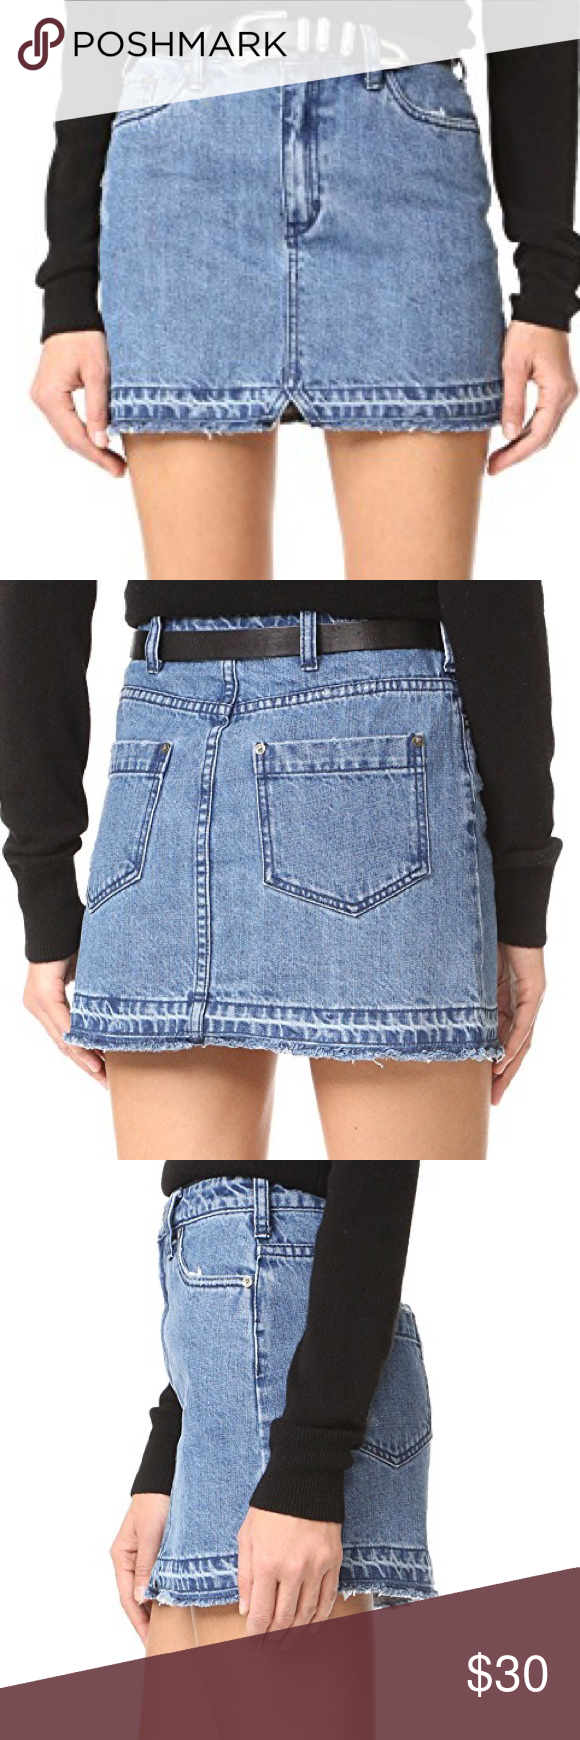 5fa2ce999dd27 Free People Step Up Denim Mini Skirt Super adorable Denim mini from free  people. Too big for me